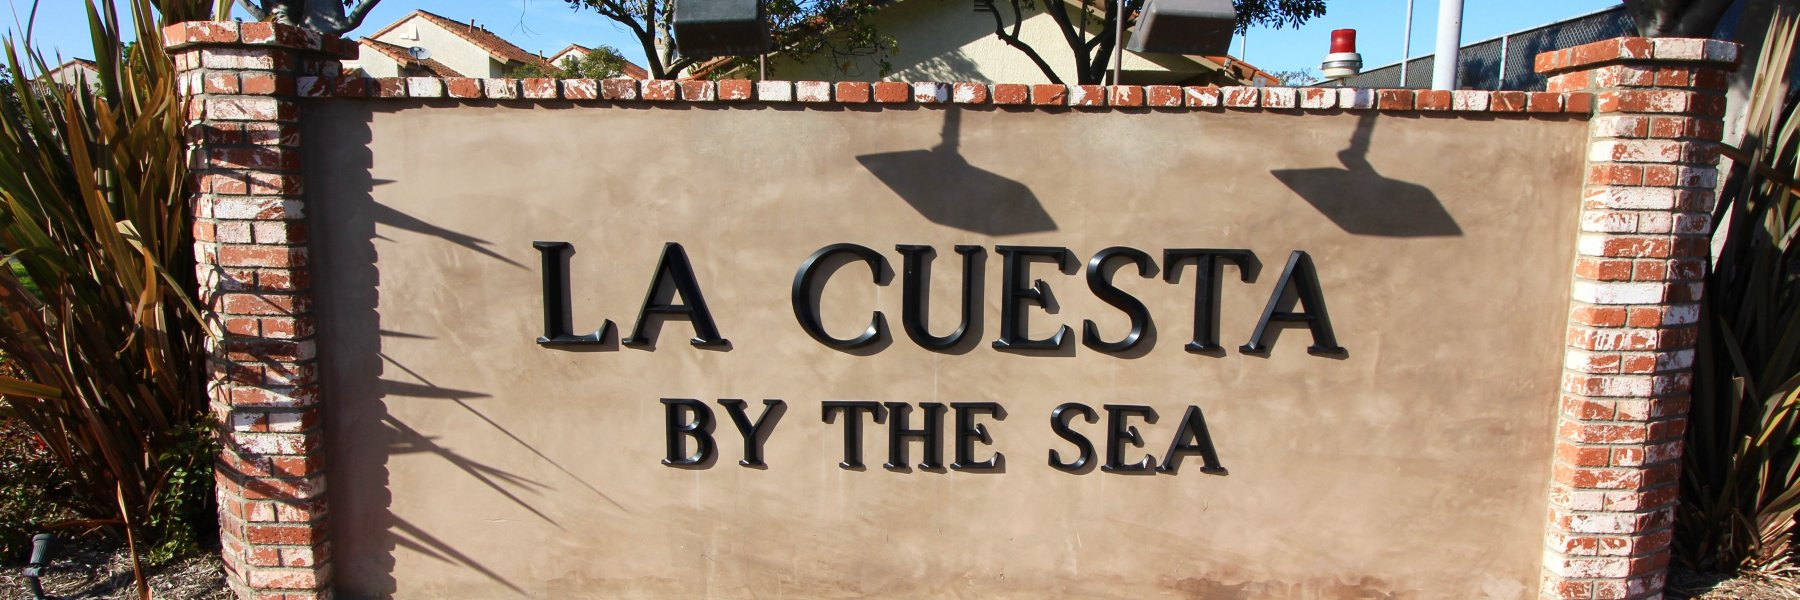 La Cuesta By The Sea is a community of condos in Huntington Beach California